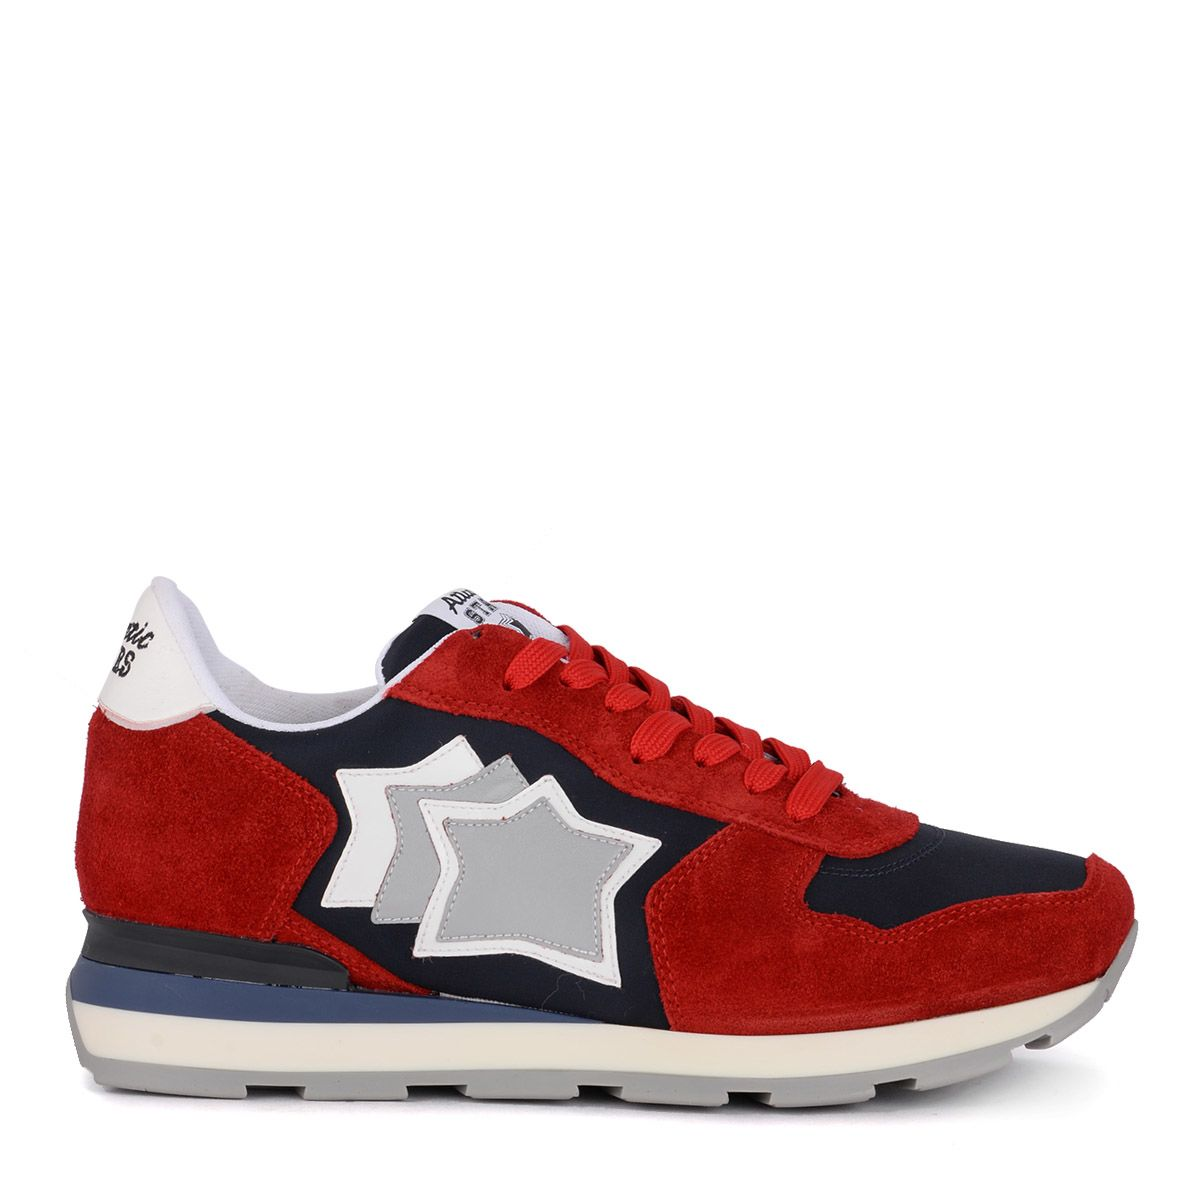 Sneaker Atlantic Stars Antares Red Suede And Blue Fabric